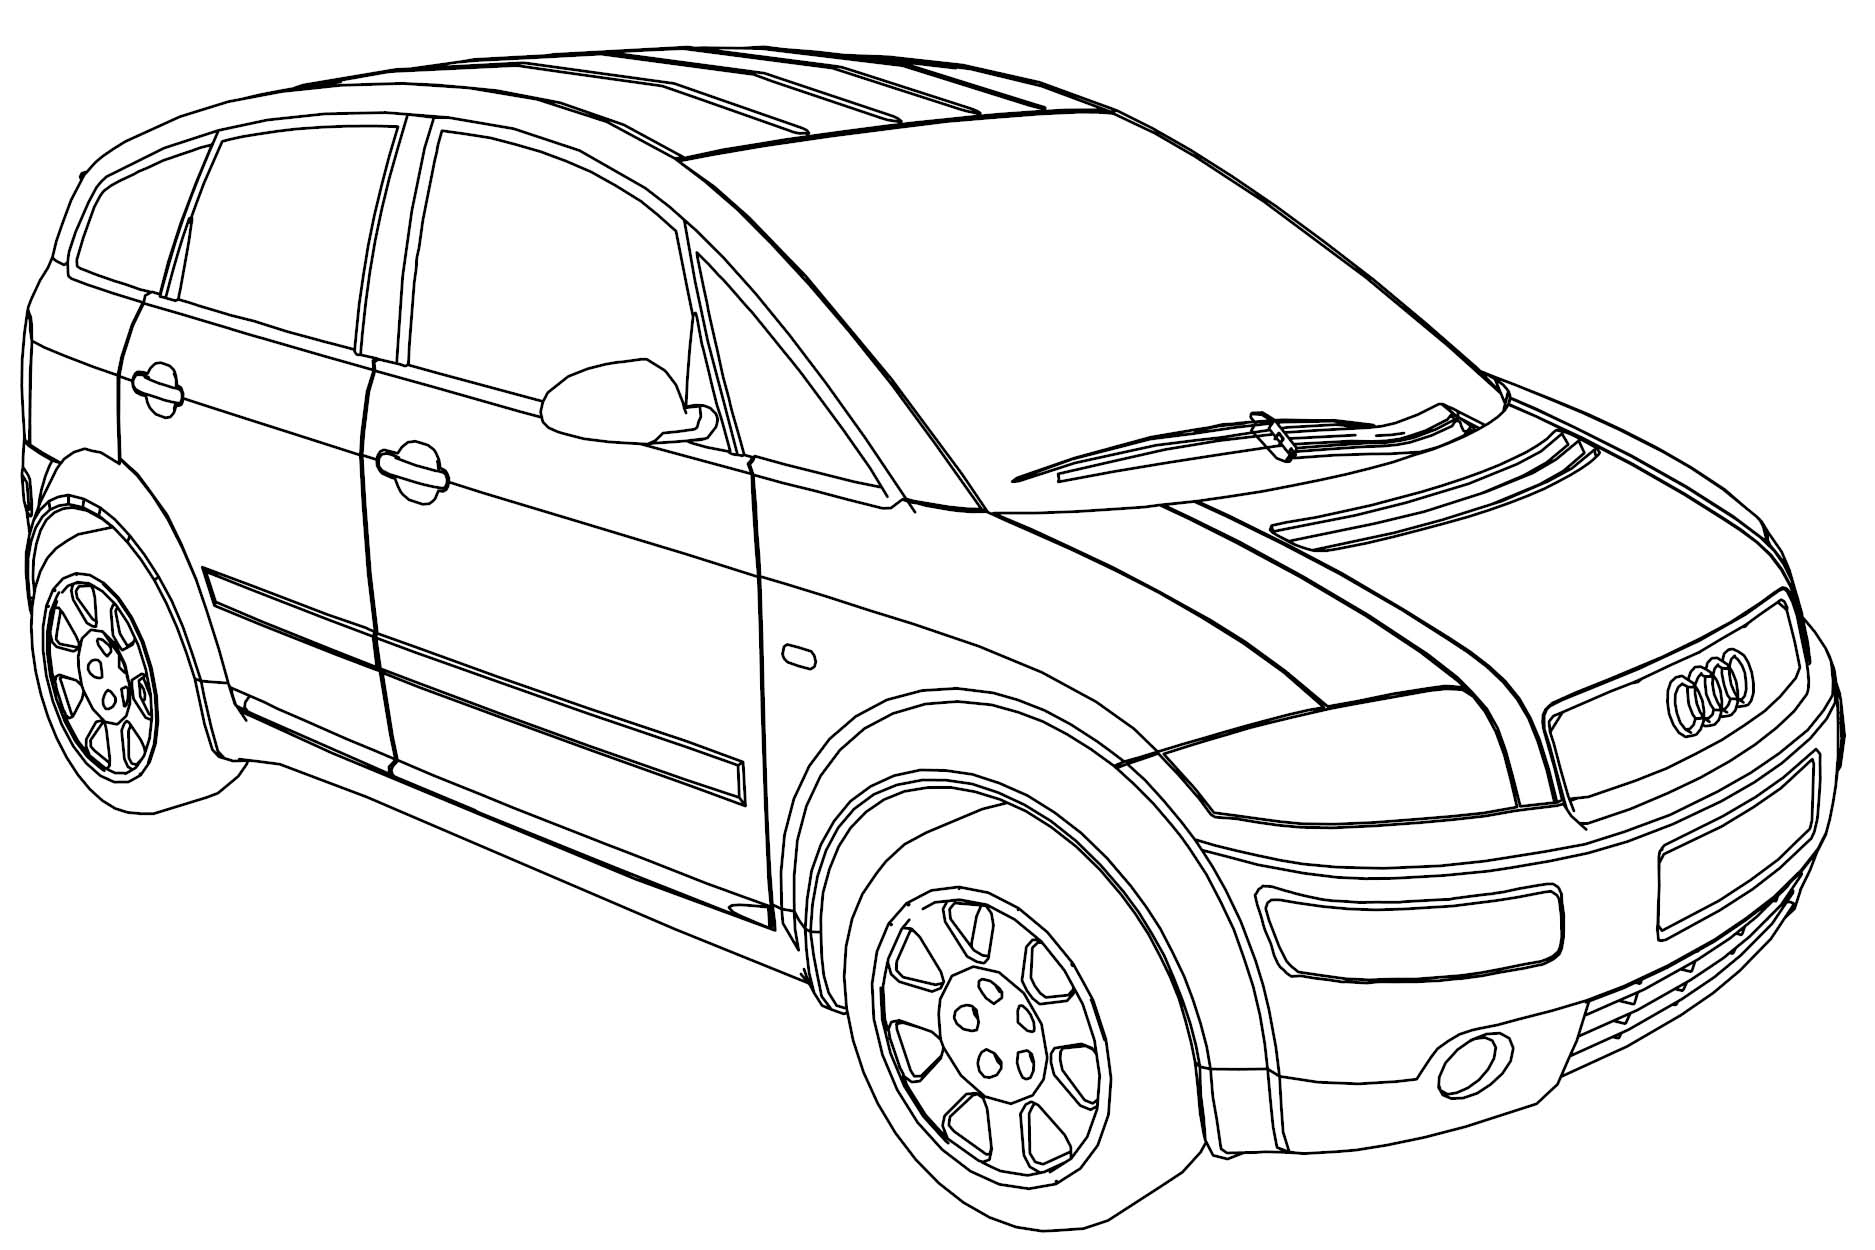 audi a2b jeep car coloring page - Coloring Page Jeep